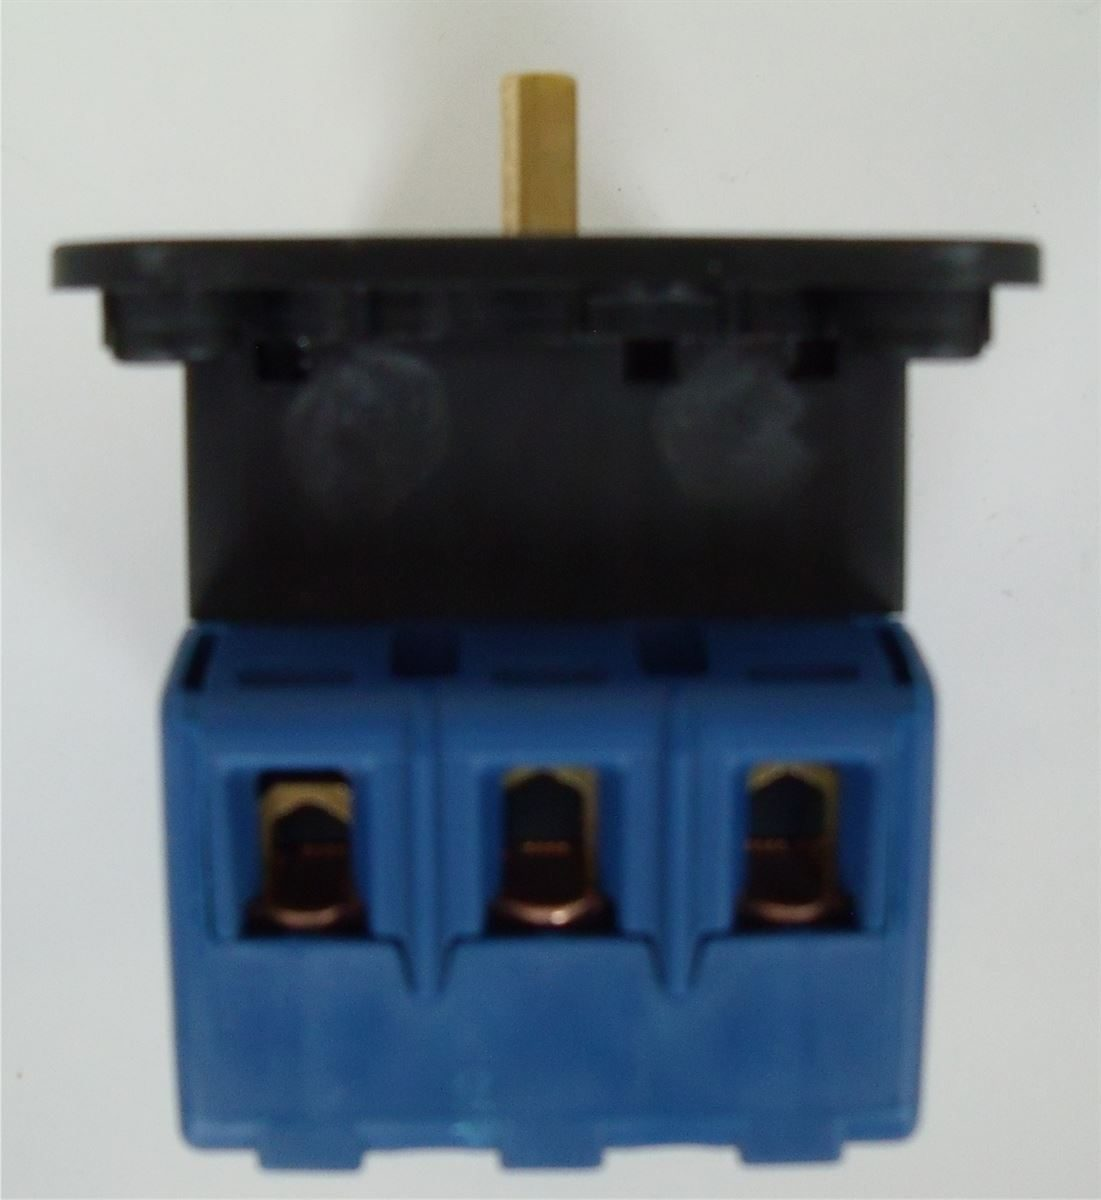 Interlock Switch 40 Amp connections